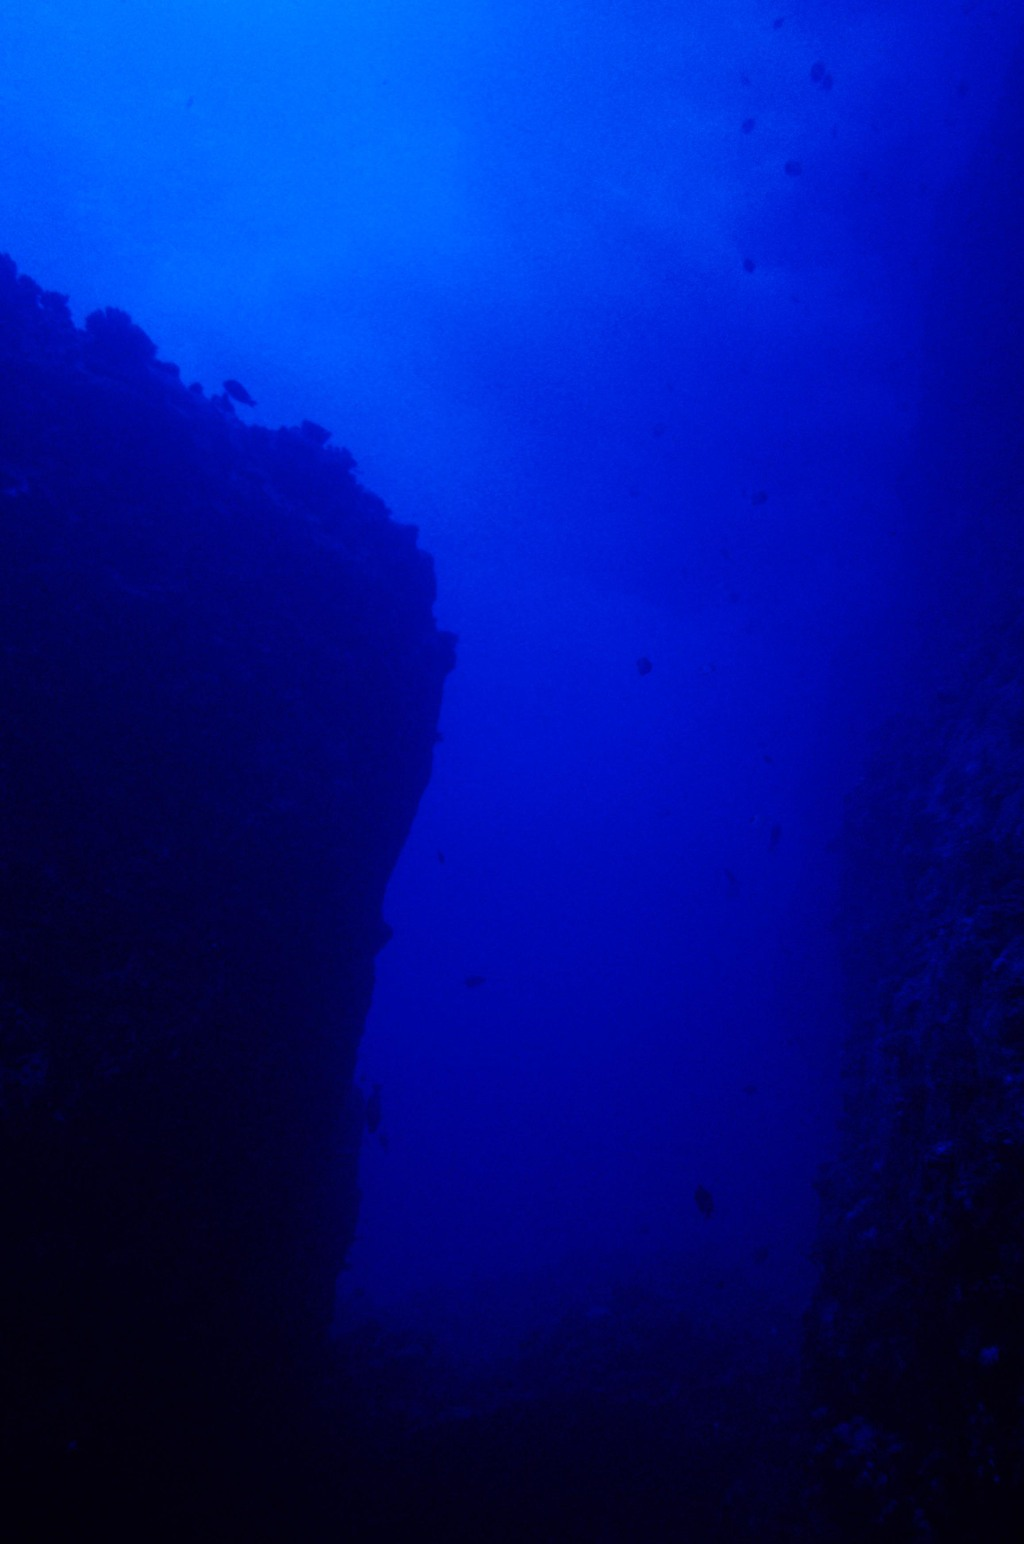 The deep sea, or deep layer[1], is the lowest layer in the ocean, existing below the thermocline, at a depth of 1000 fathoms (1828 m) or more.